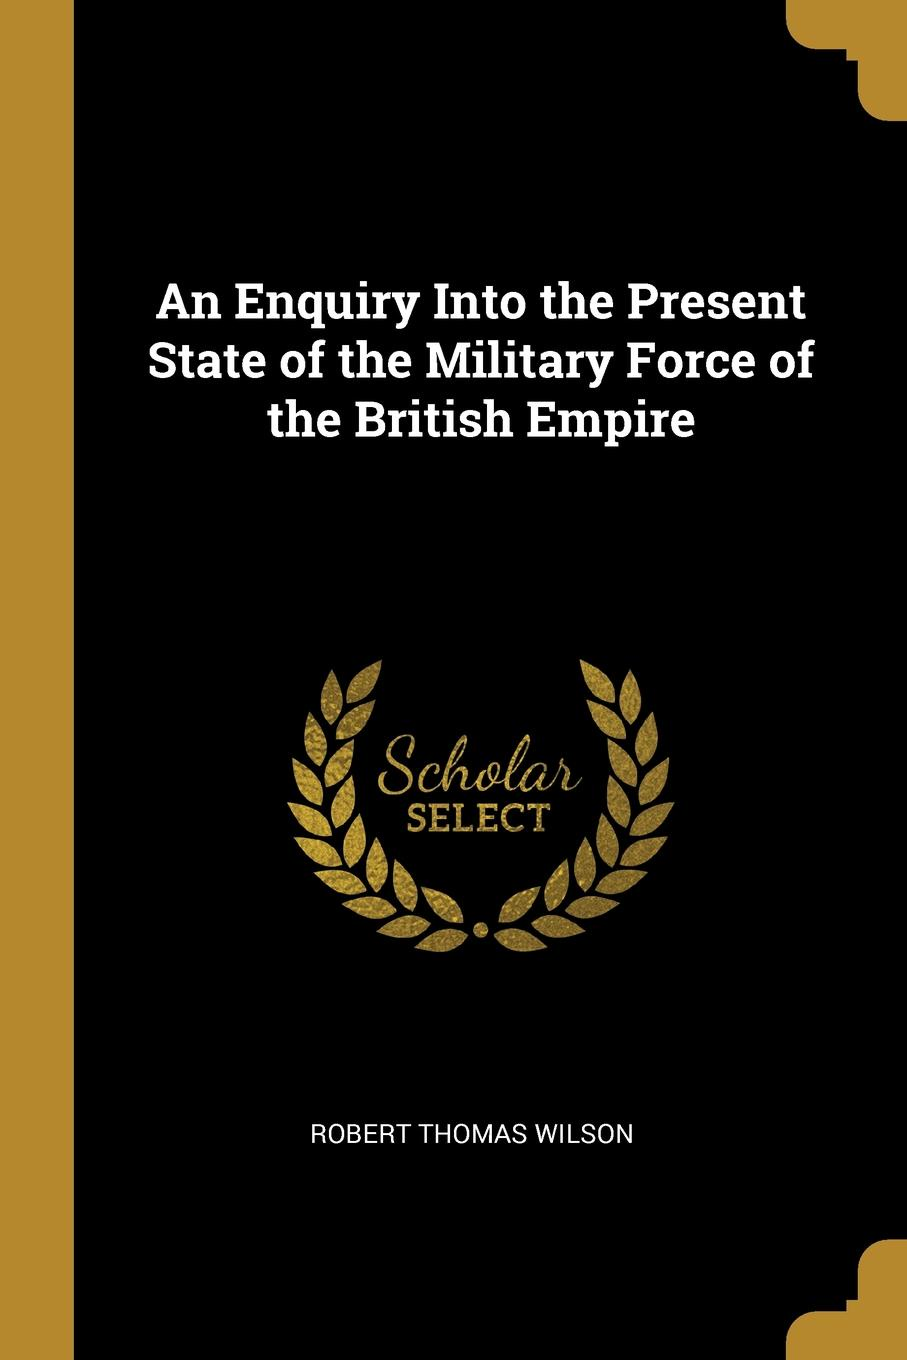 Robert Thomas Wilson. An Enquiry Into the Present State of the Military Force of the British Empire